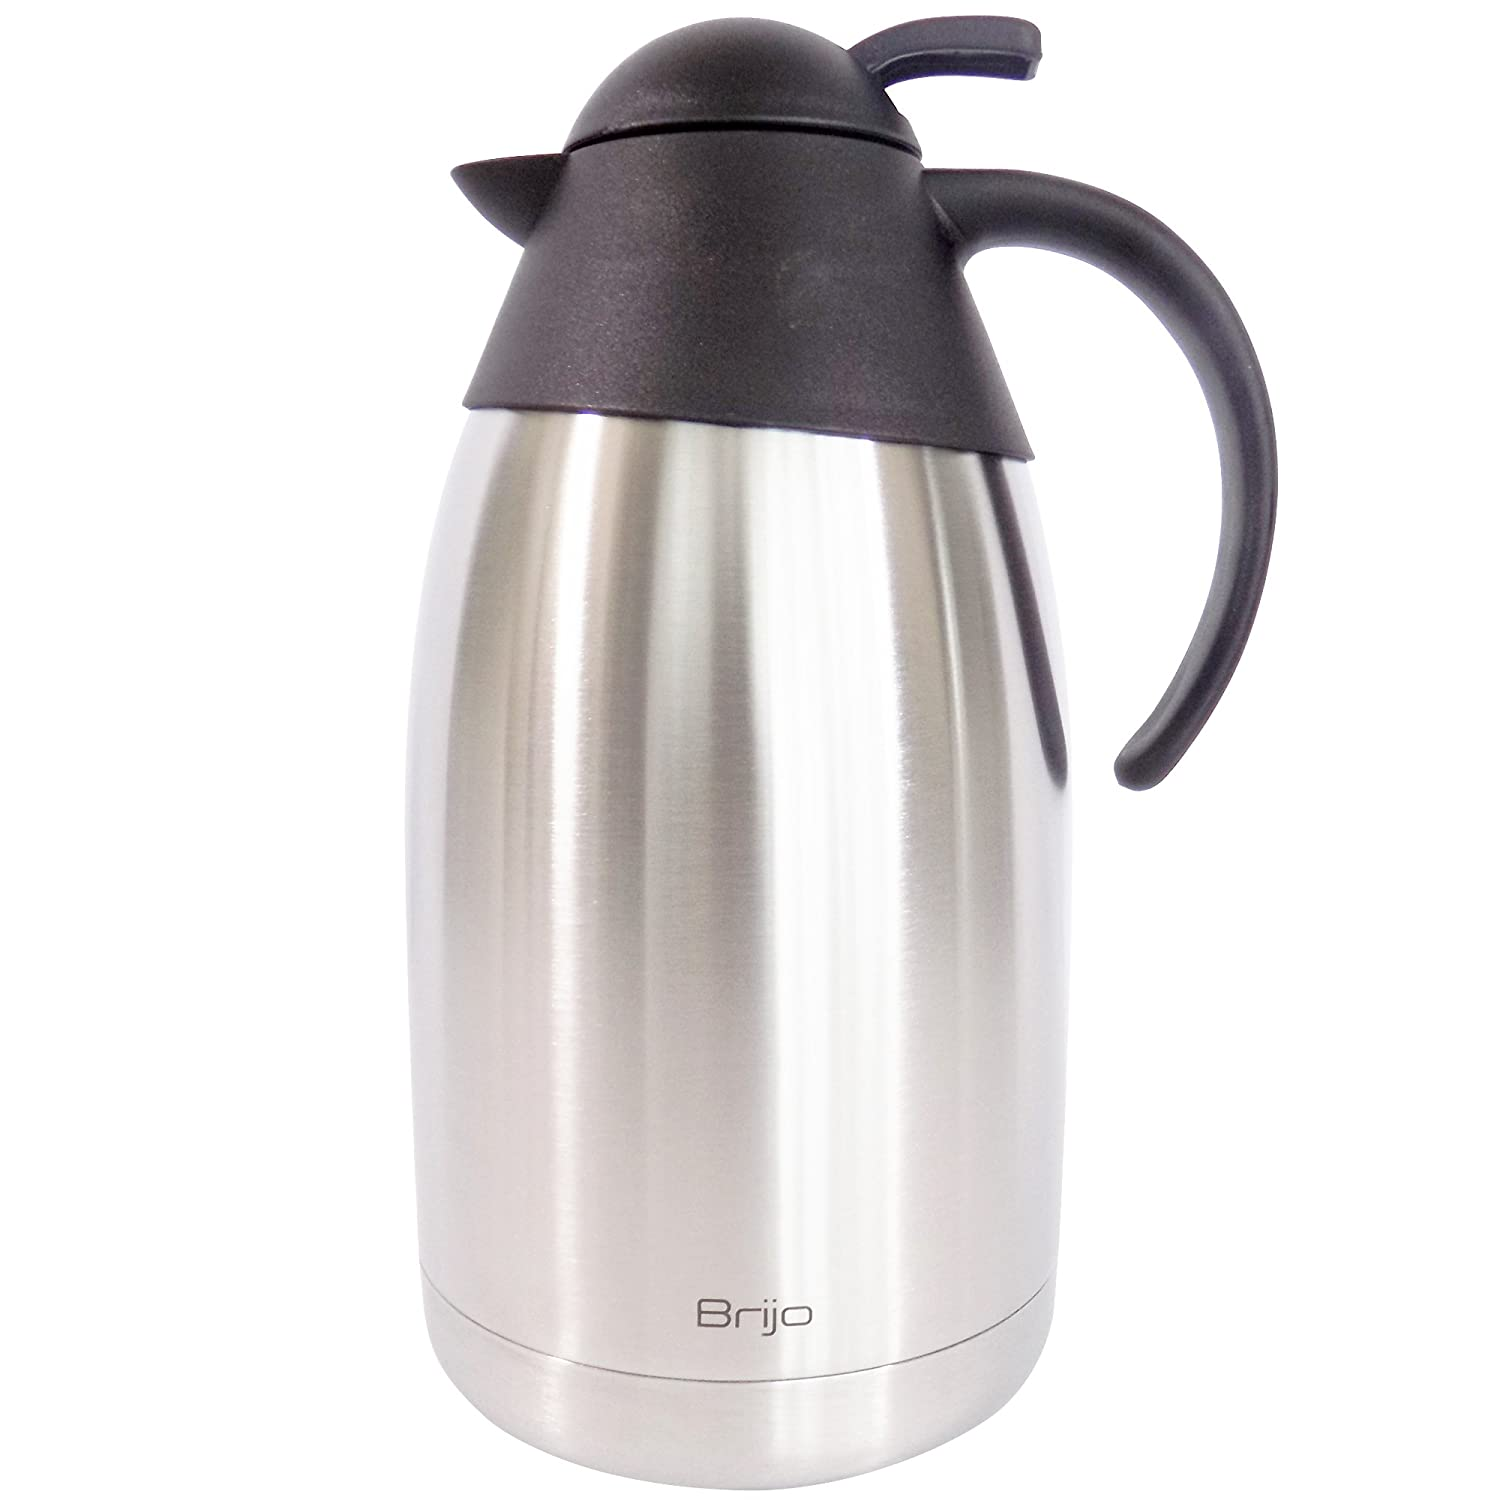 Coffee Carafe Thermal Insulated |Large 12 Cup 68 Ounce 2 Liter Capacity | Stainless Steel with Double Wall Vacuum Insulation | Keep Drinks Hot or Cold | Brush and Cloth Included by Brijo